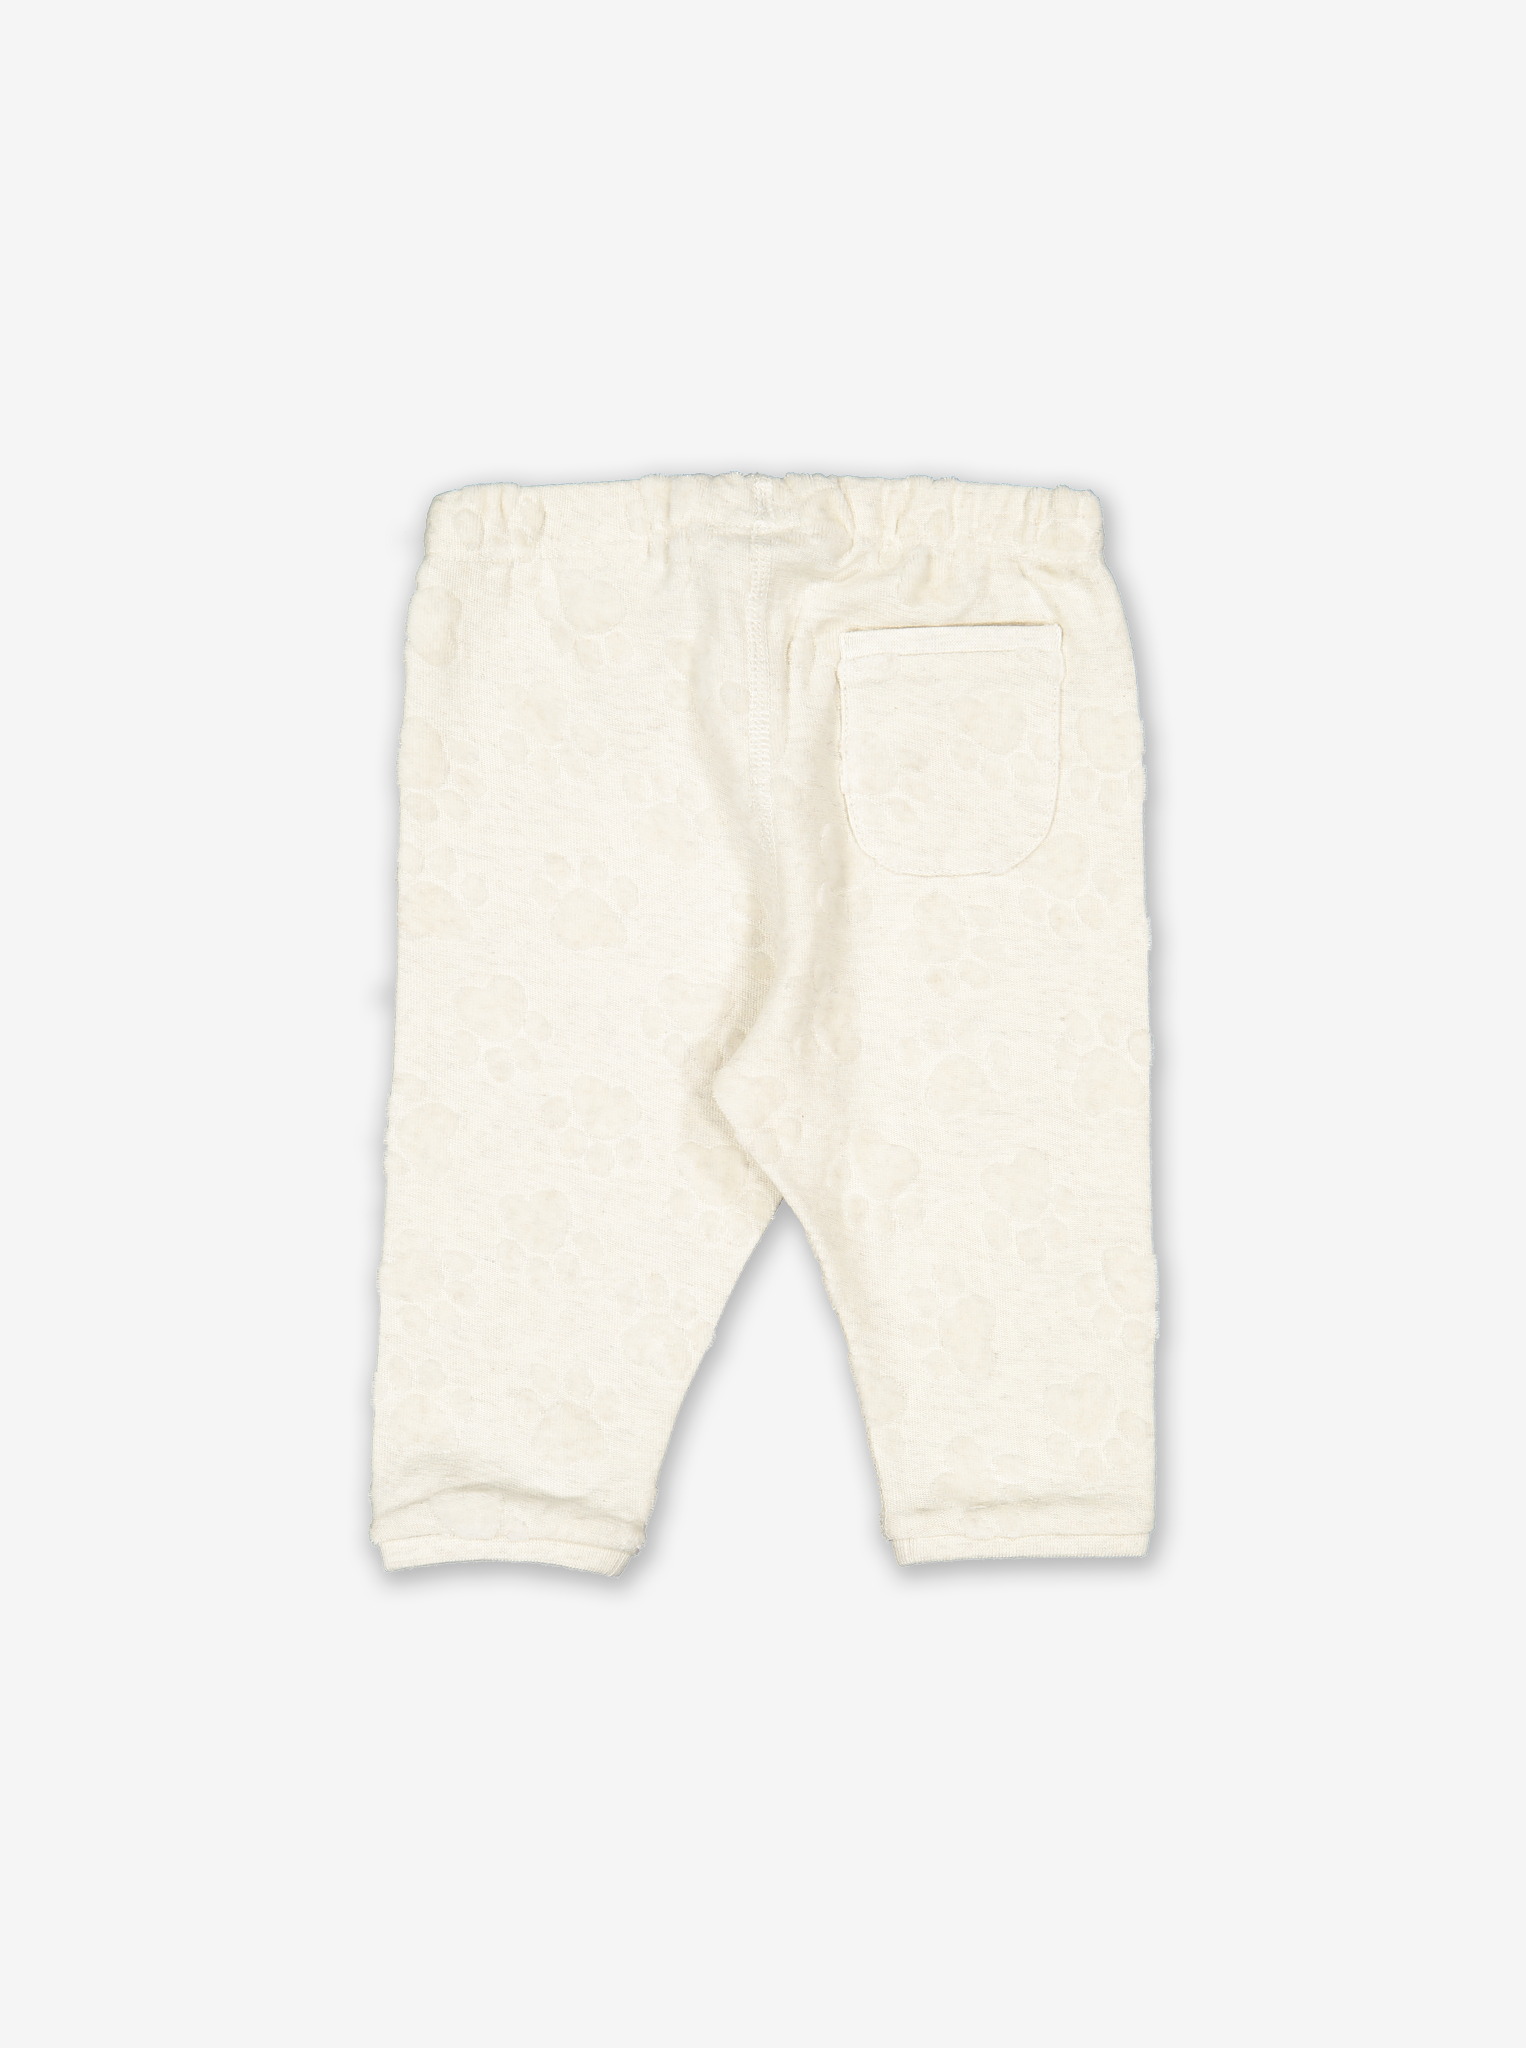 Pawprint Textured Baby Trousers